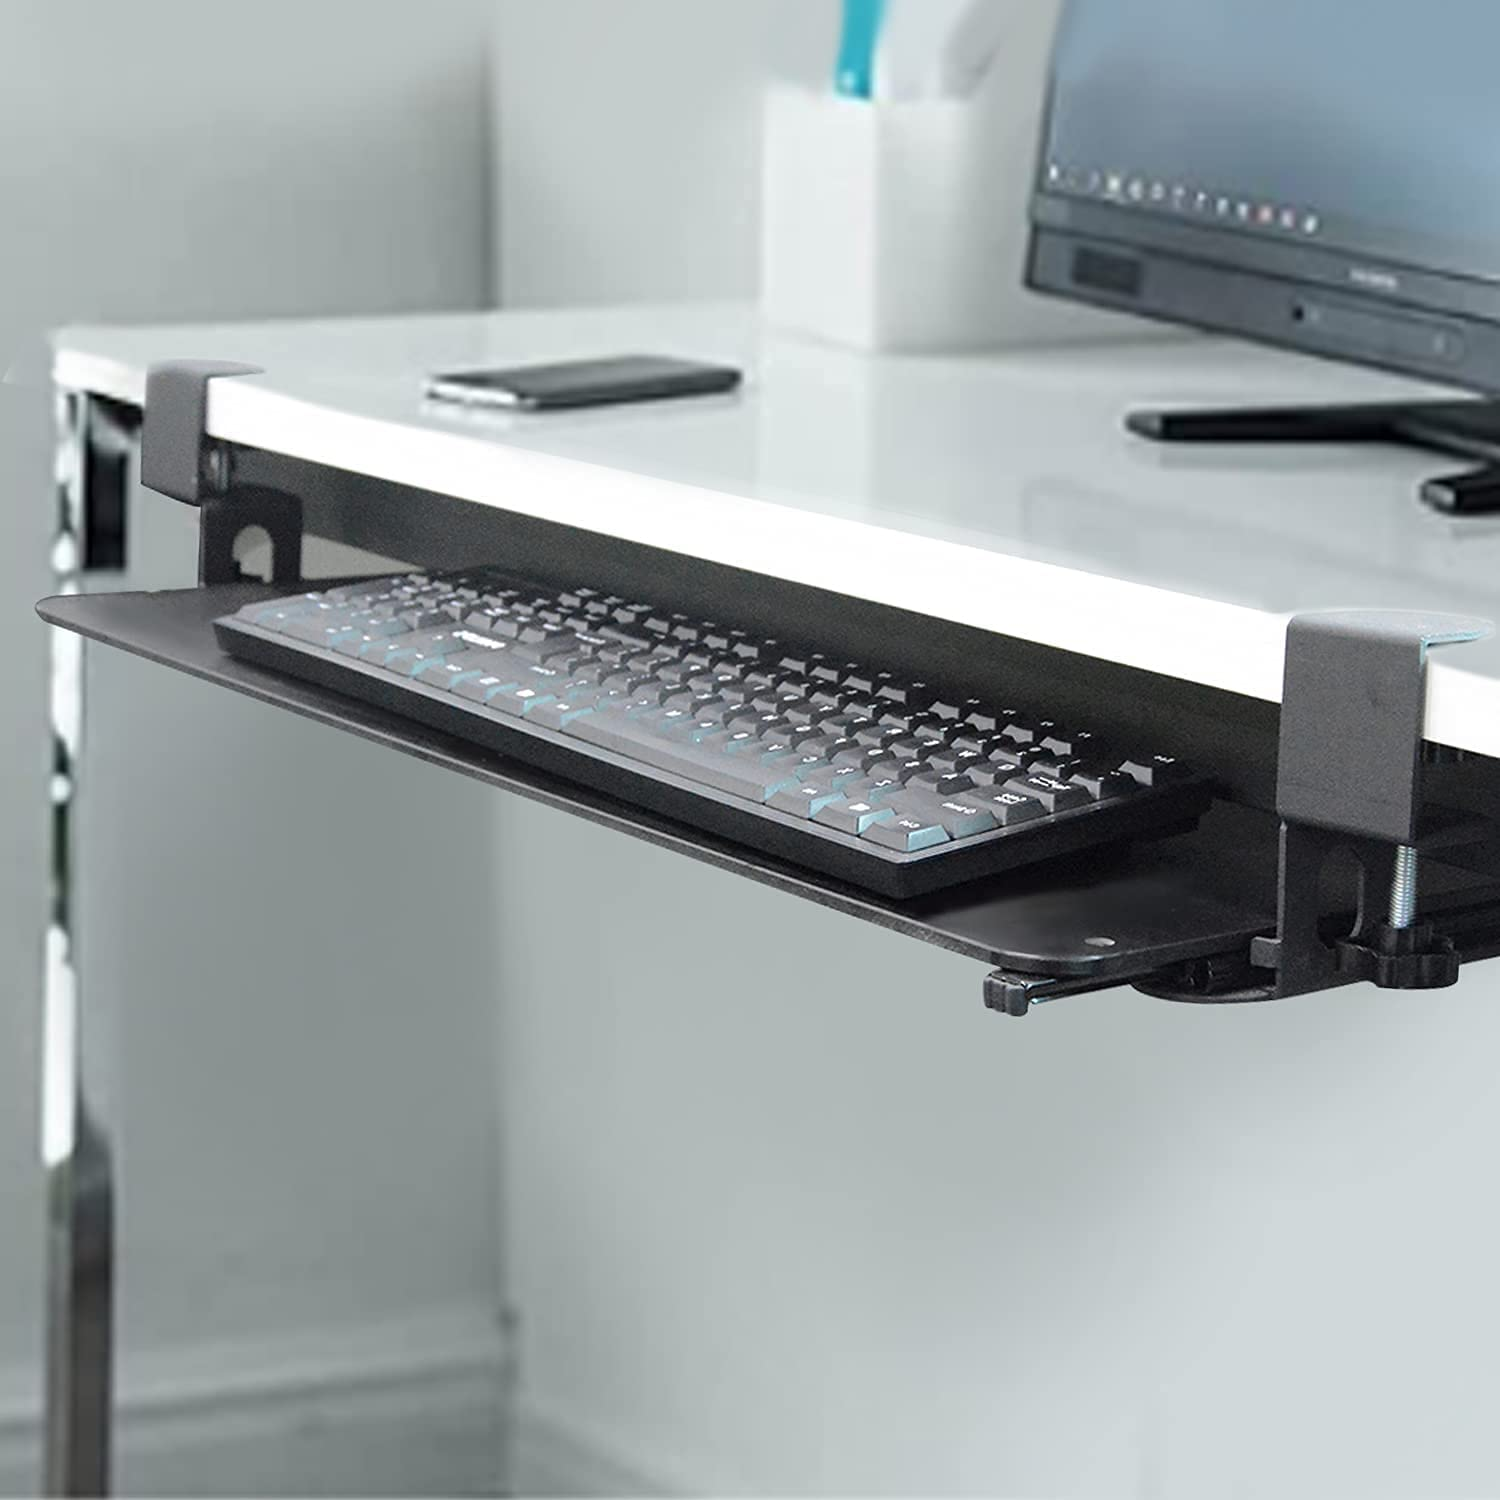 uyoyous Louisville-Jefferson County Mall Keyboard Tray Max 64% OFF Under Desk with Large C Sturdy for D Clamp